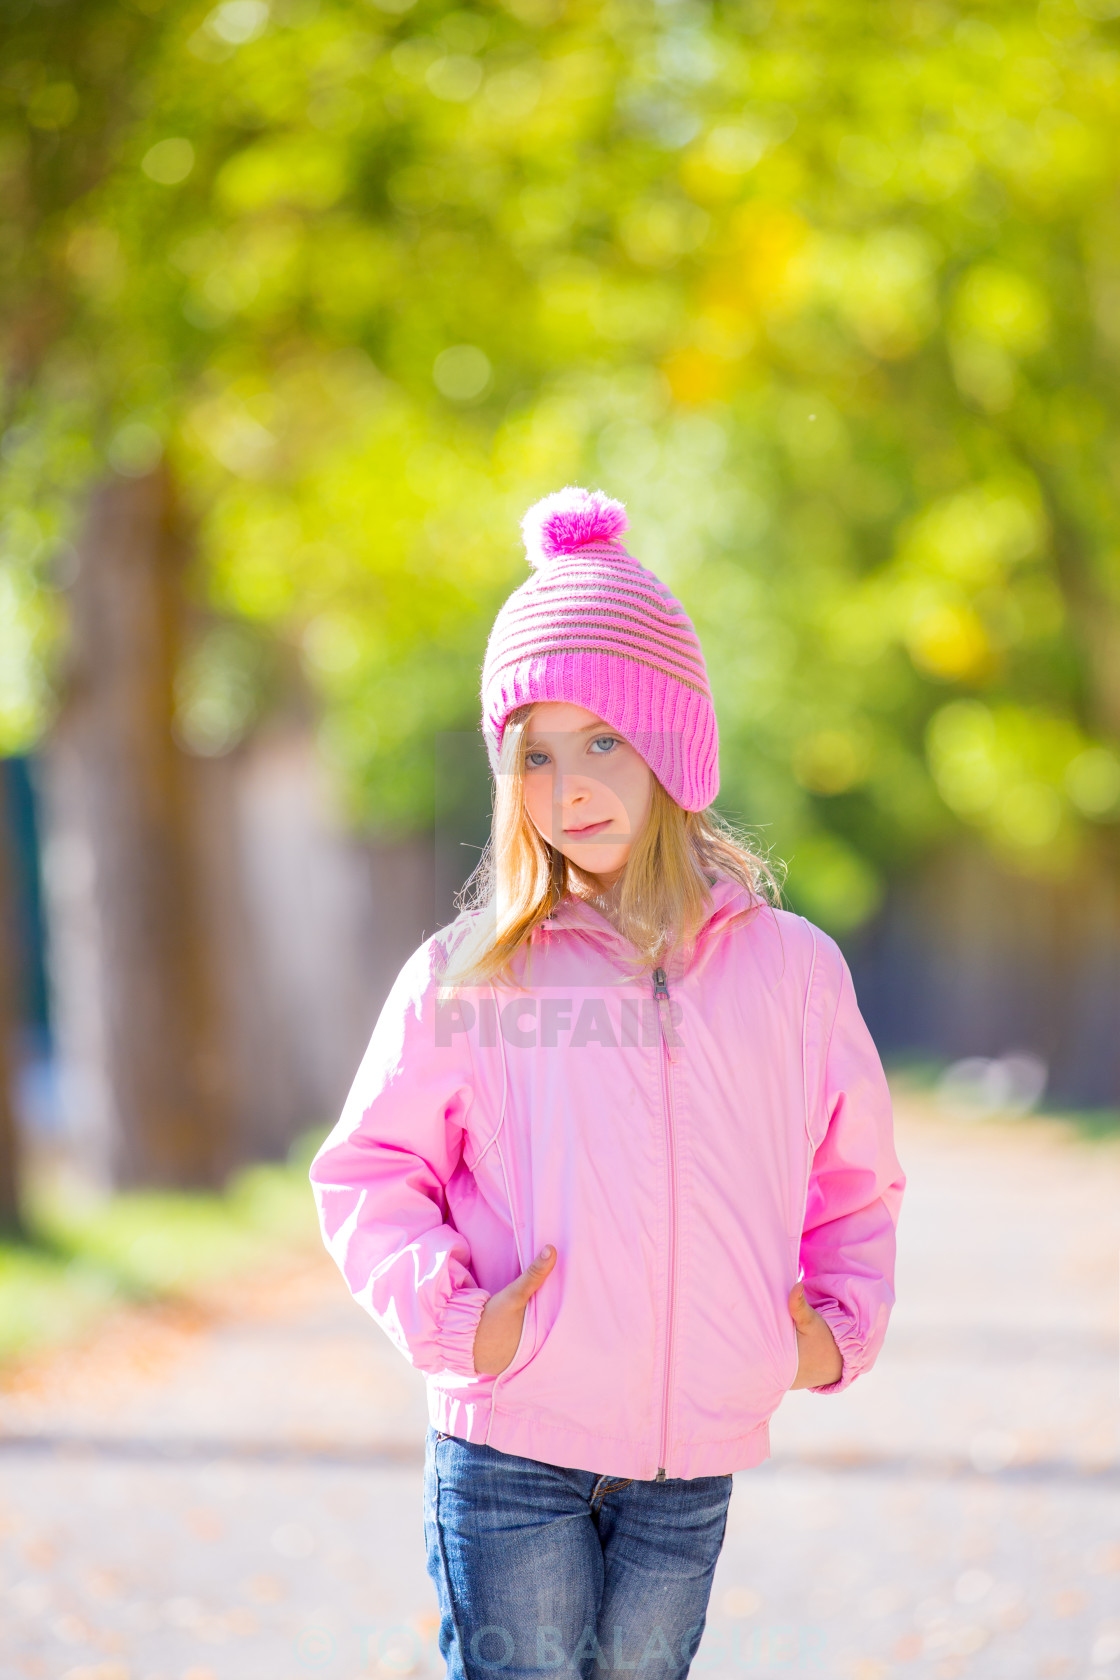 """""""autumn winter kid girl blond with jeans and pink snow cap"""" stock image"""